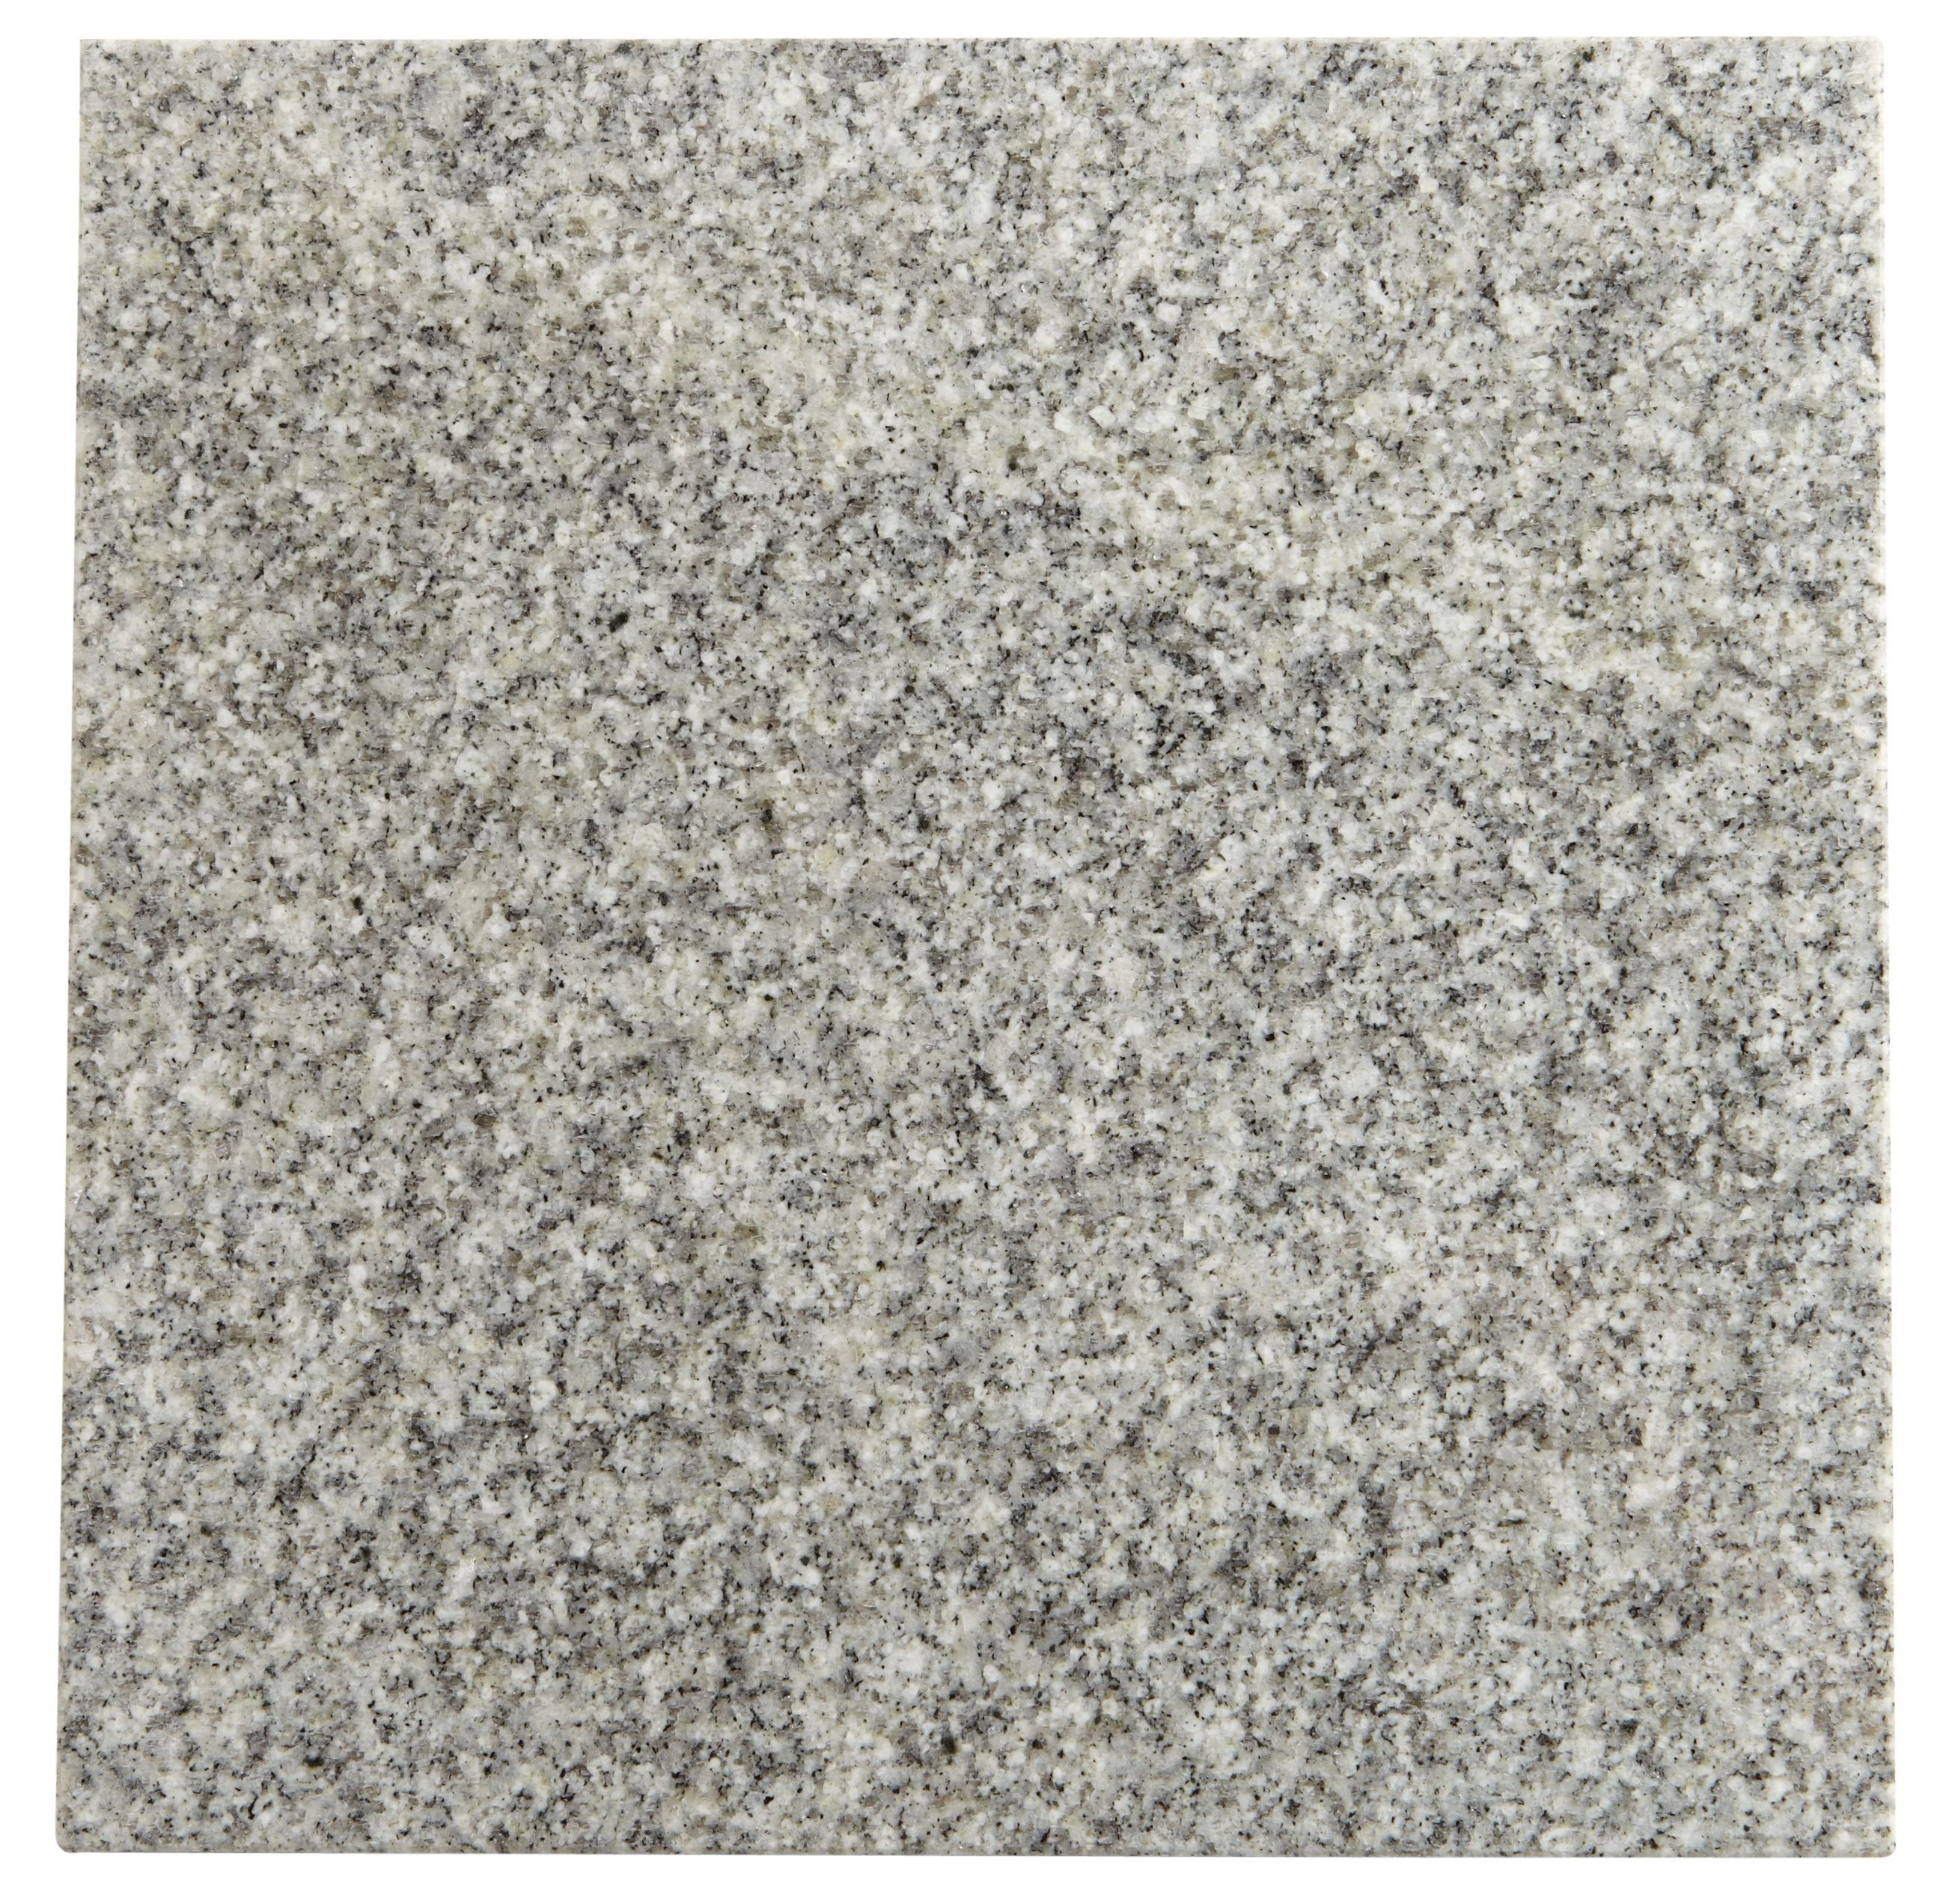 Grey Stone Effect Granite Wall & Floor Tile, Pack Of 5, (l)305mm (w)305mm